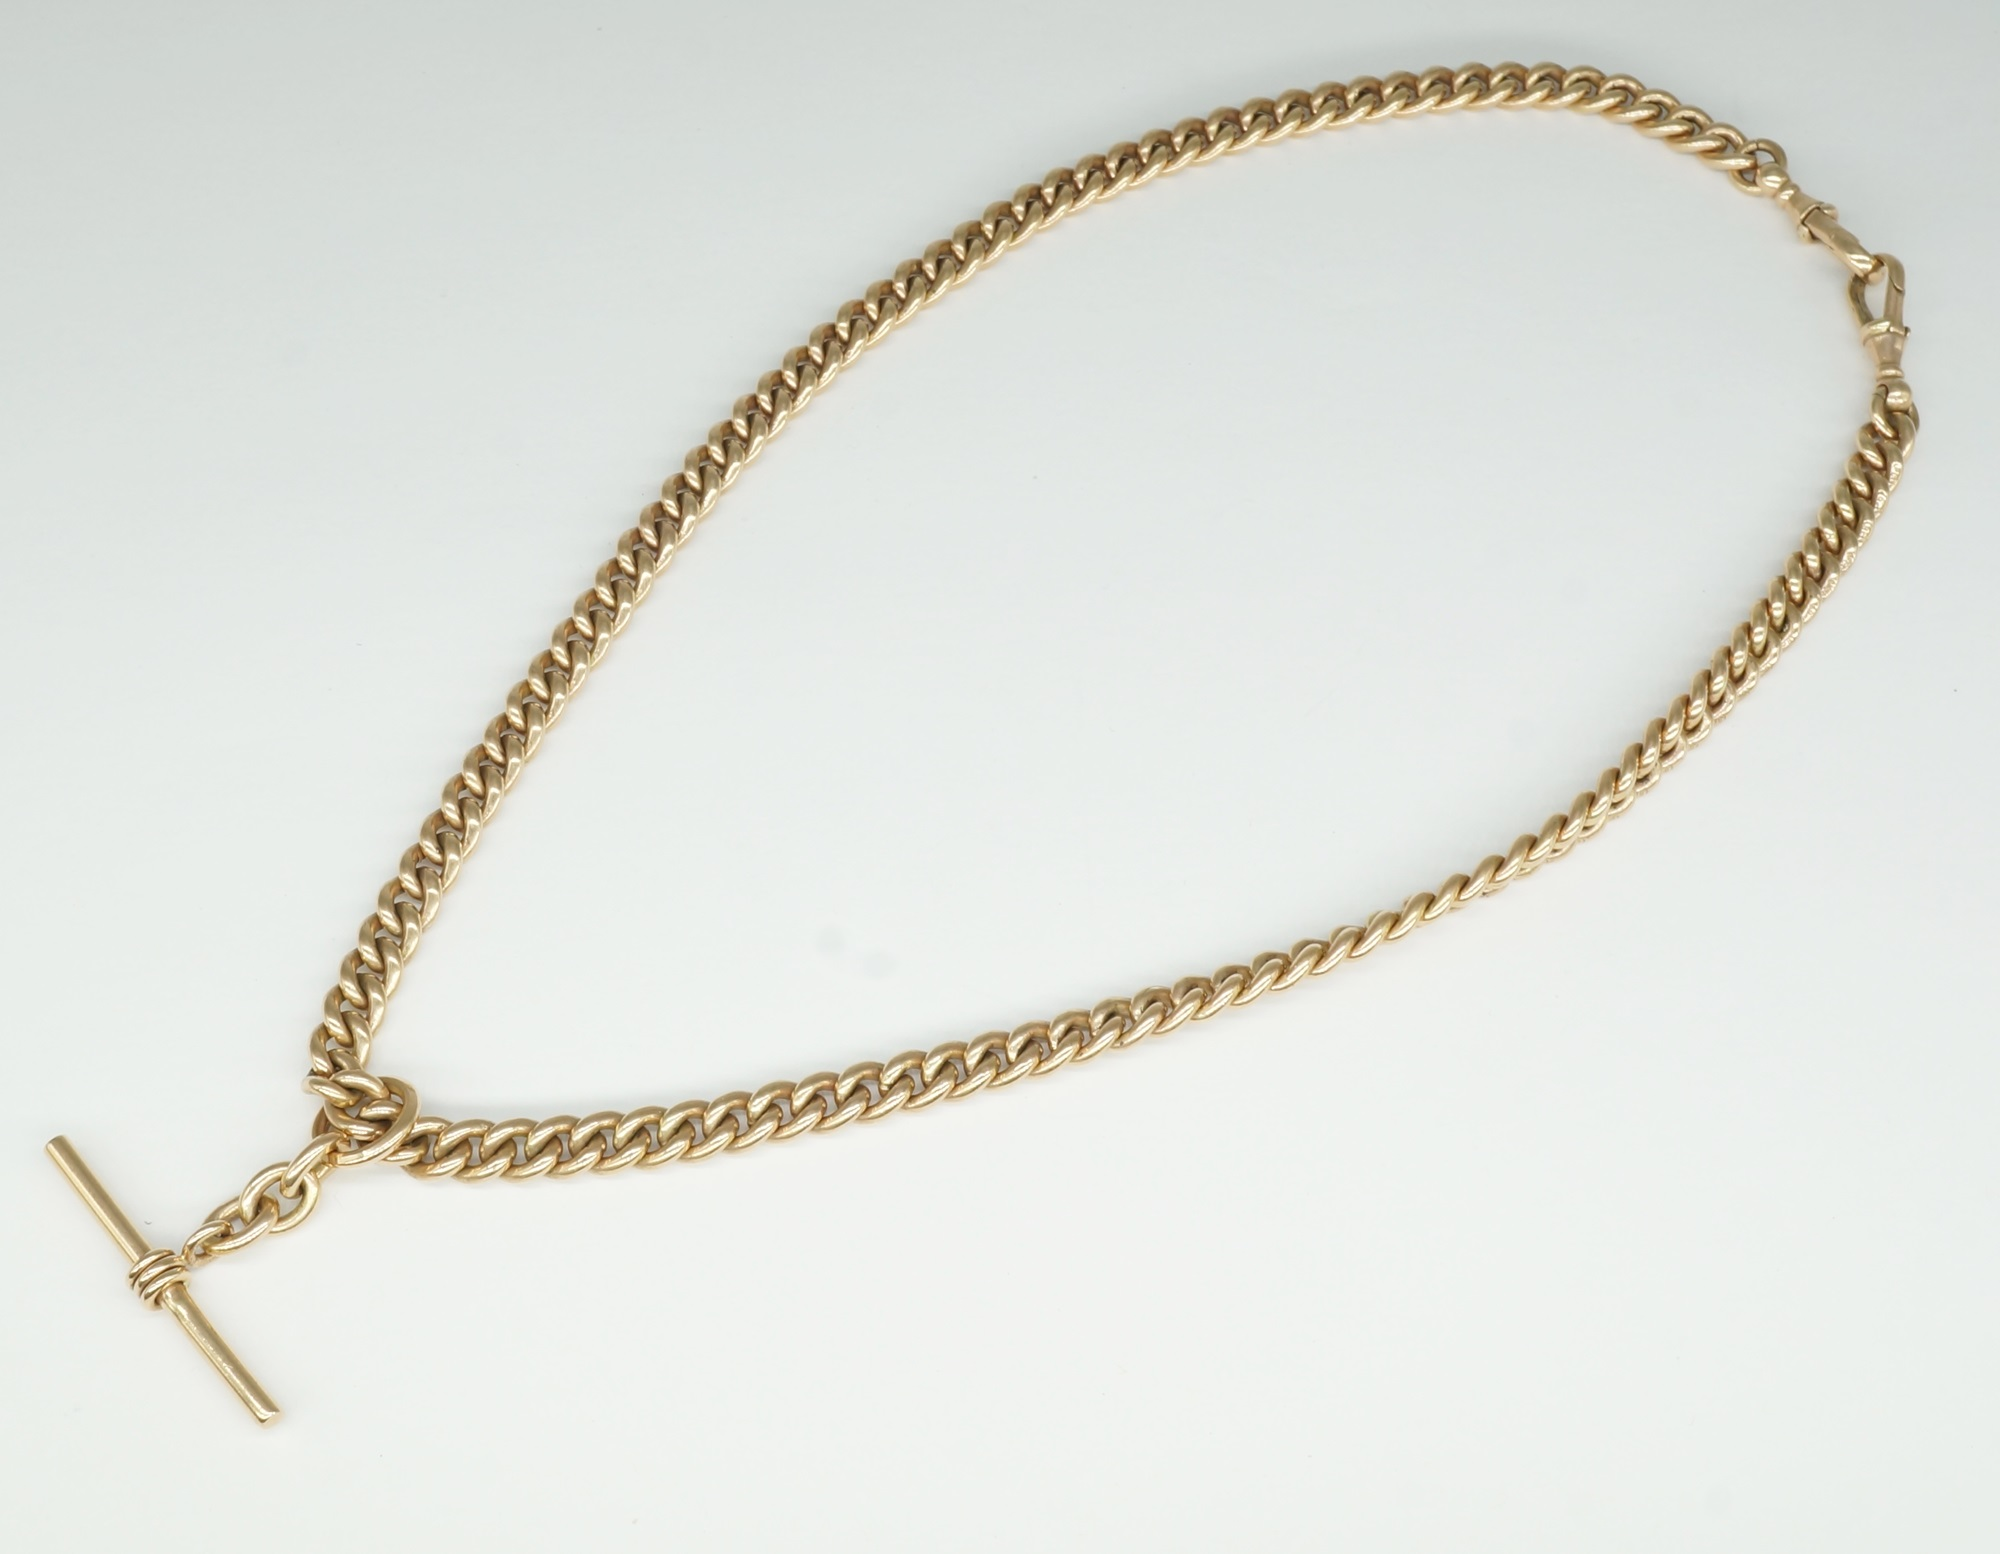 '9ct Rose Gold Fob Chain '